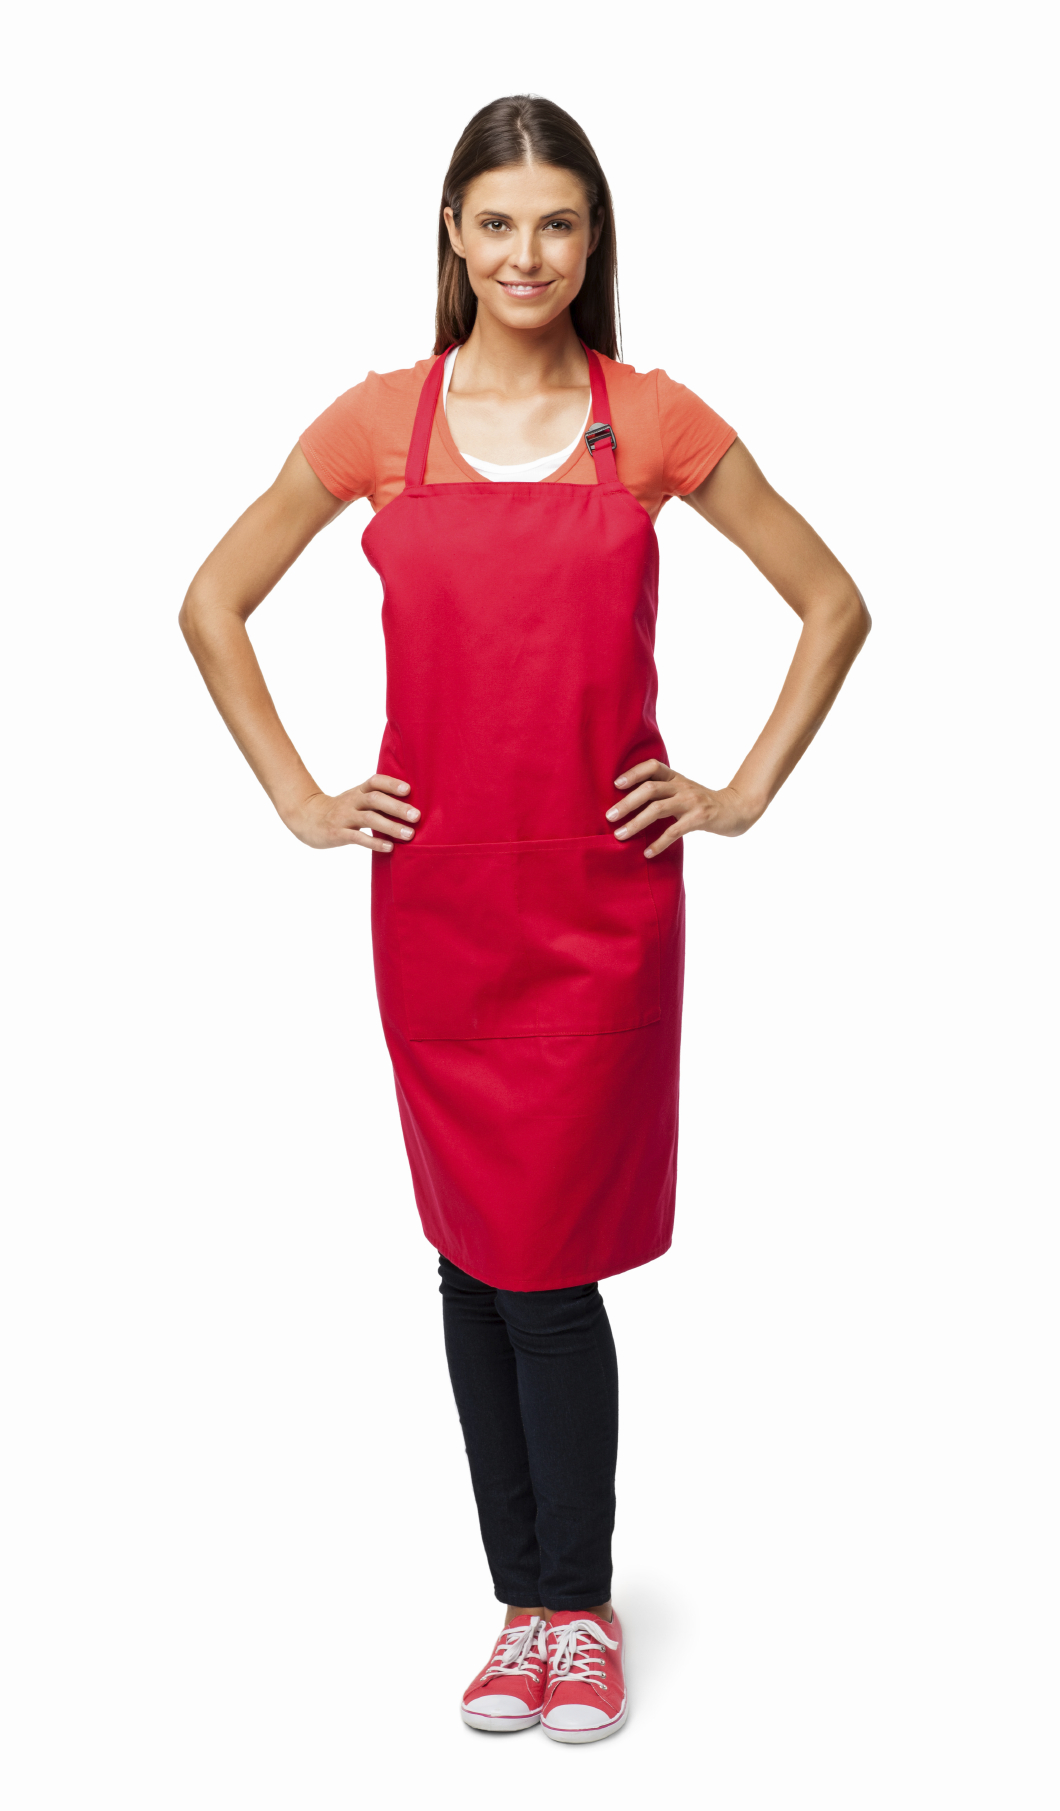 Woman In Red Apron - Isolated